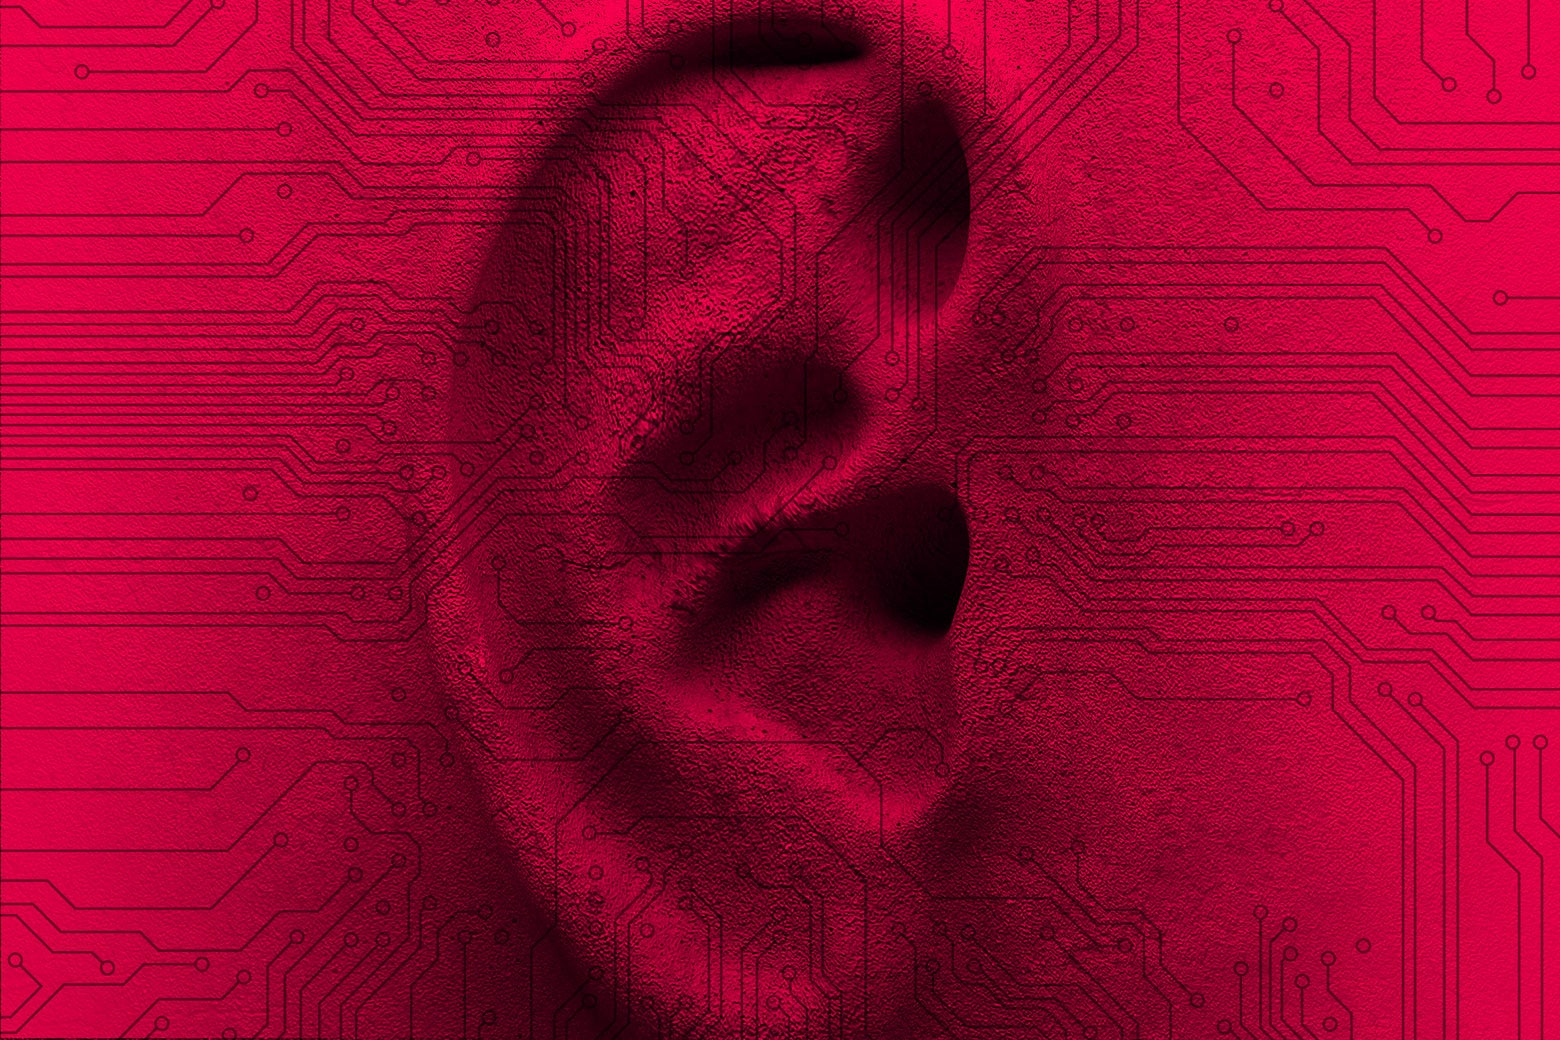 An ear with digital surveillance.